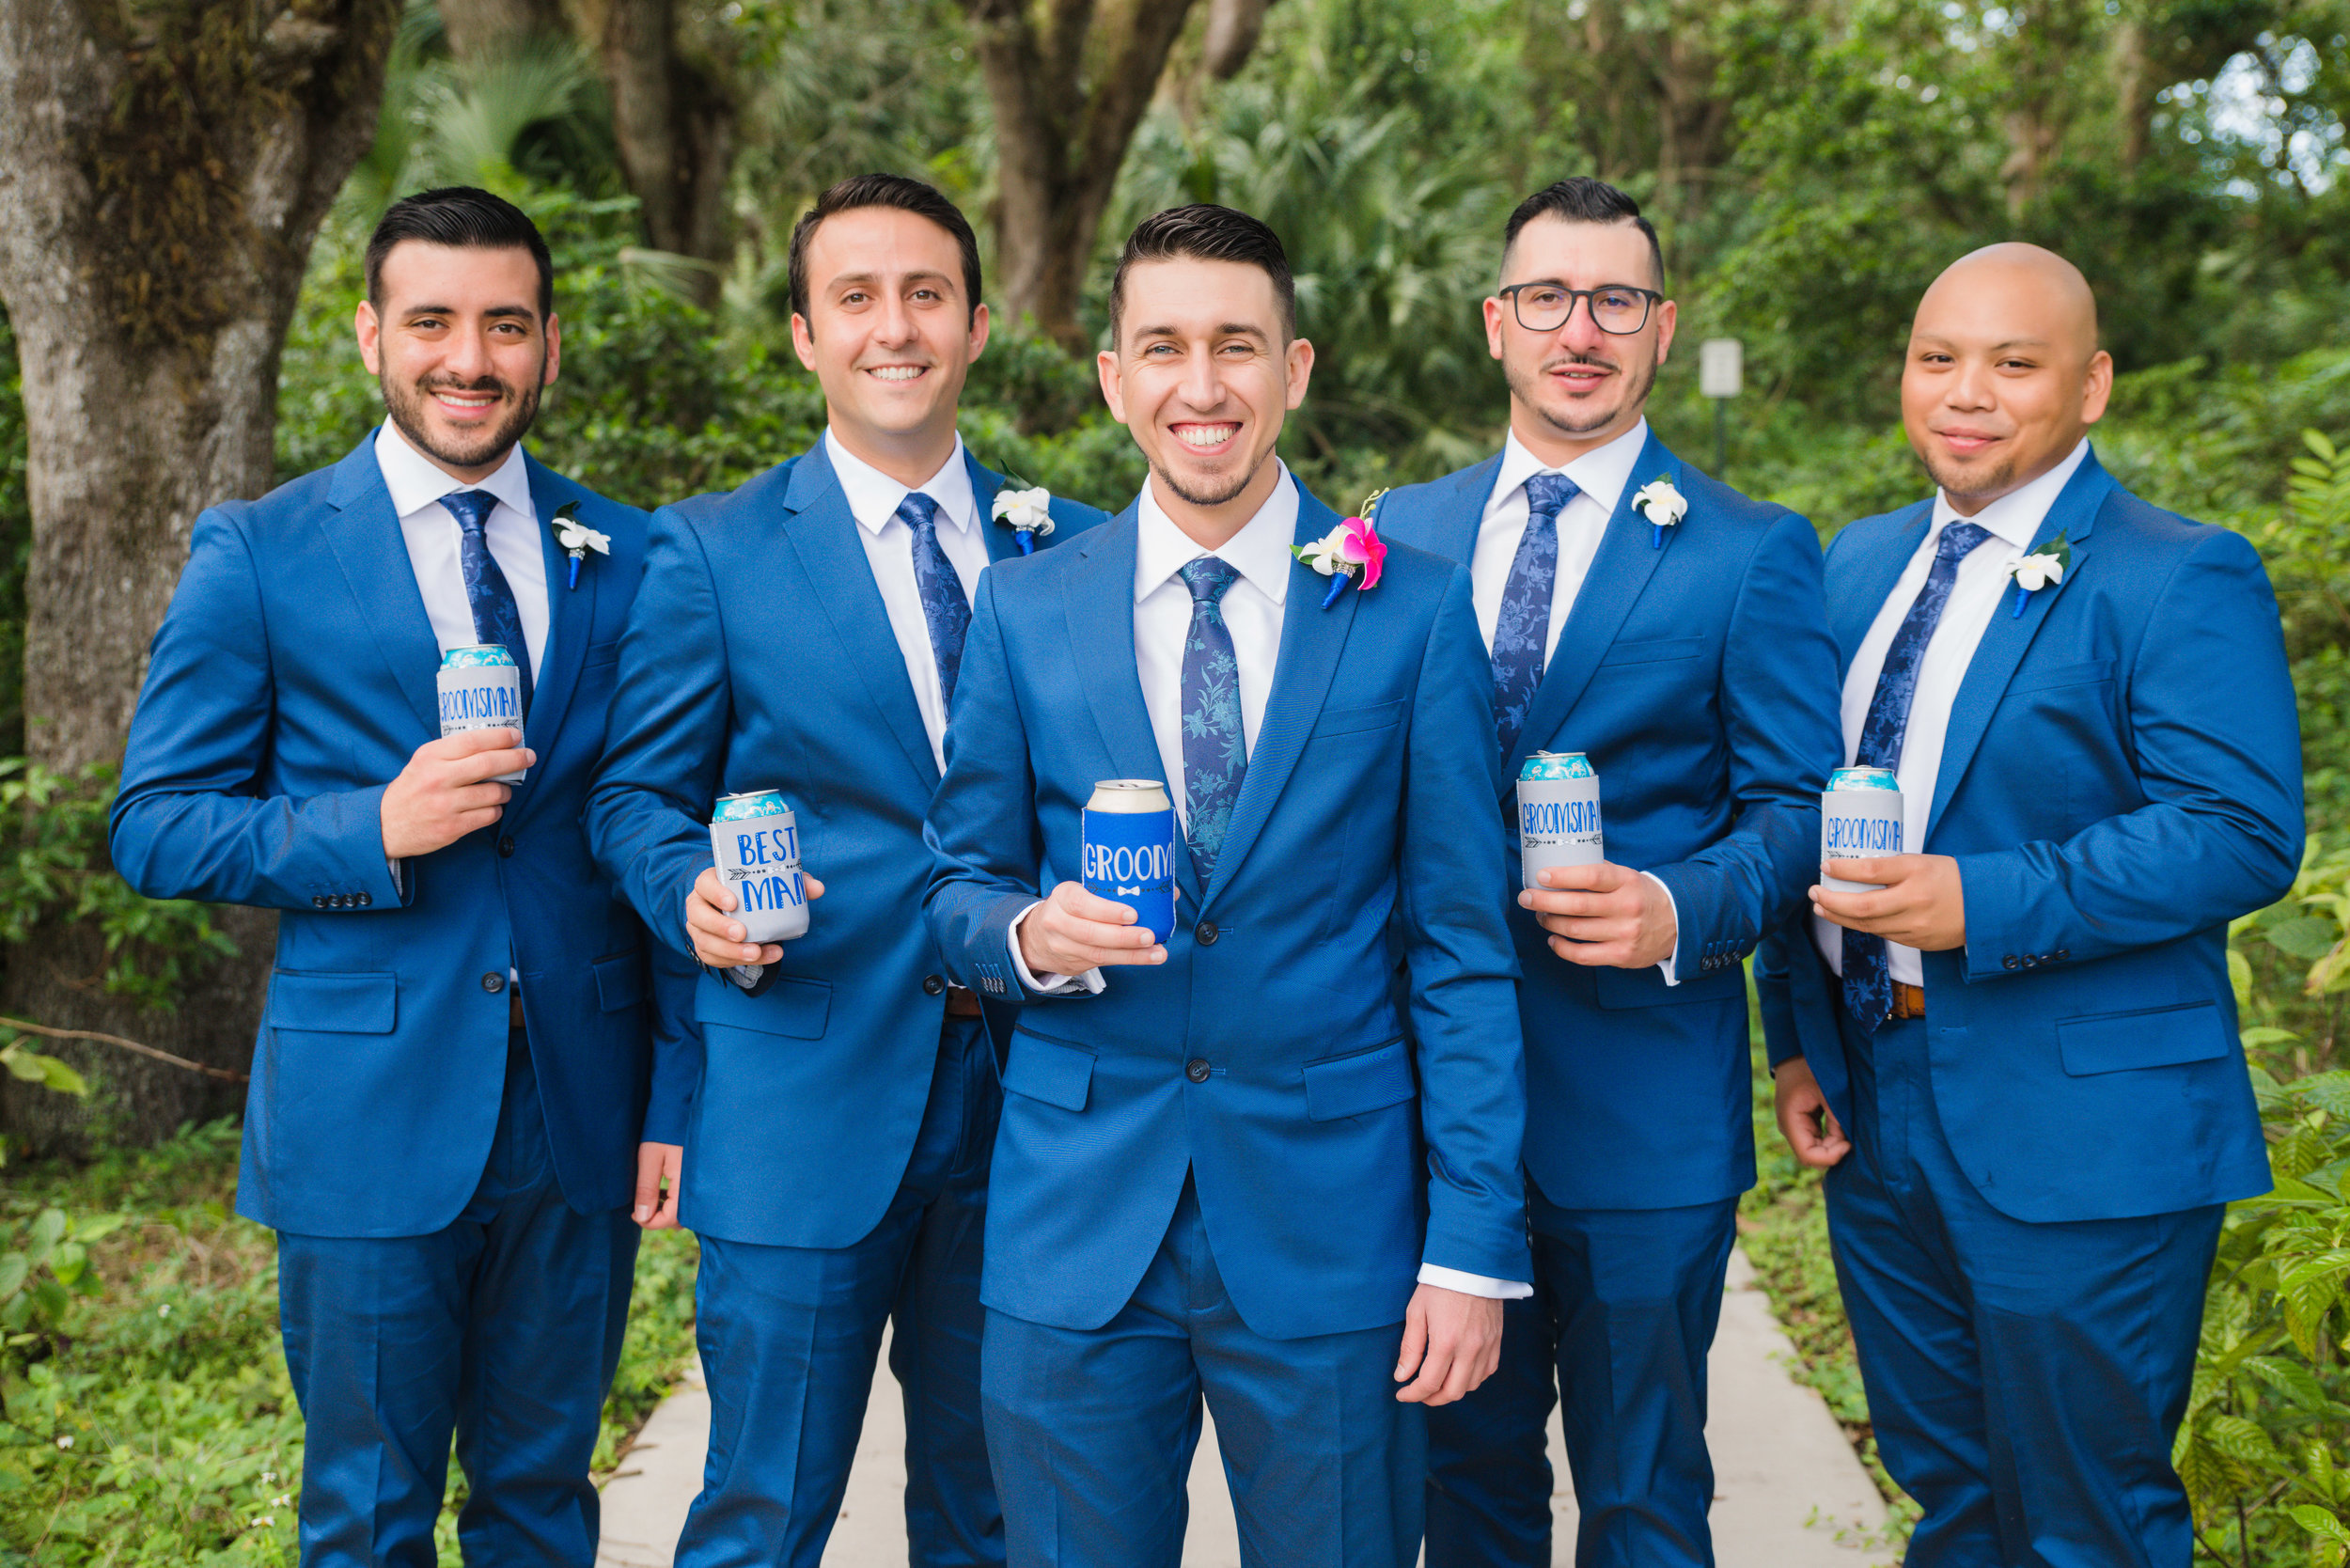 Groomsmen Portraits - Destination Wedding